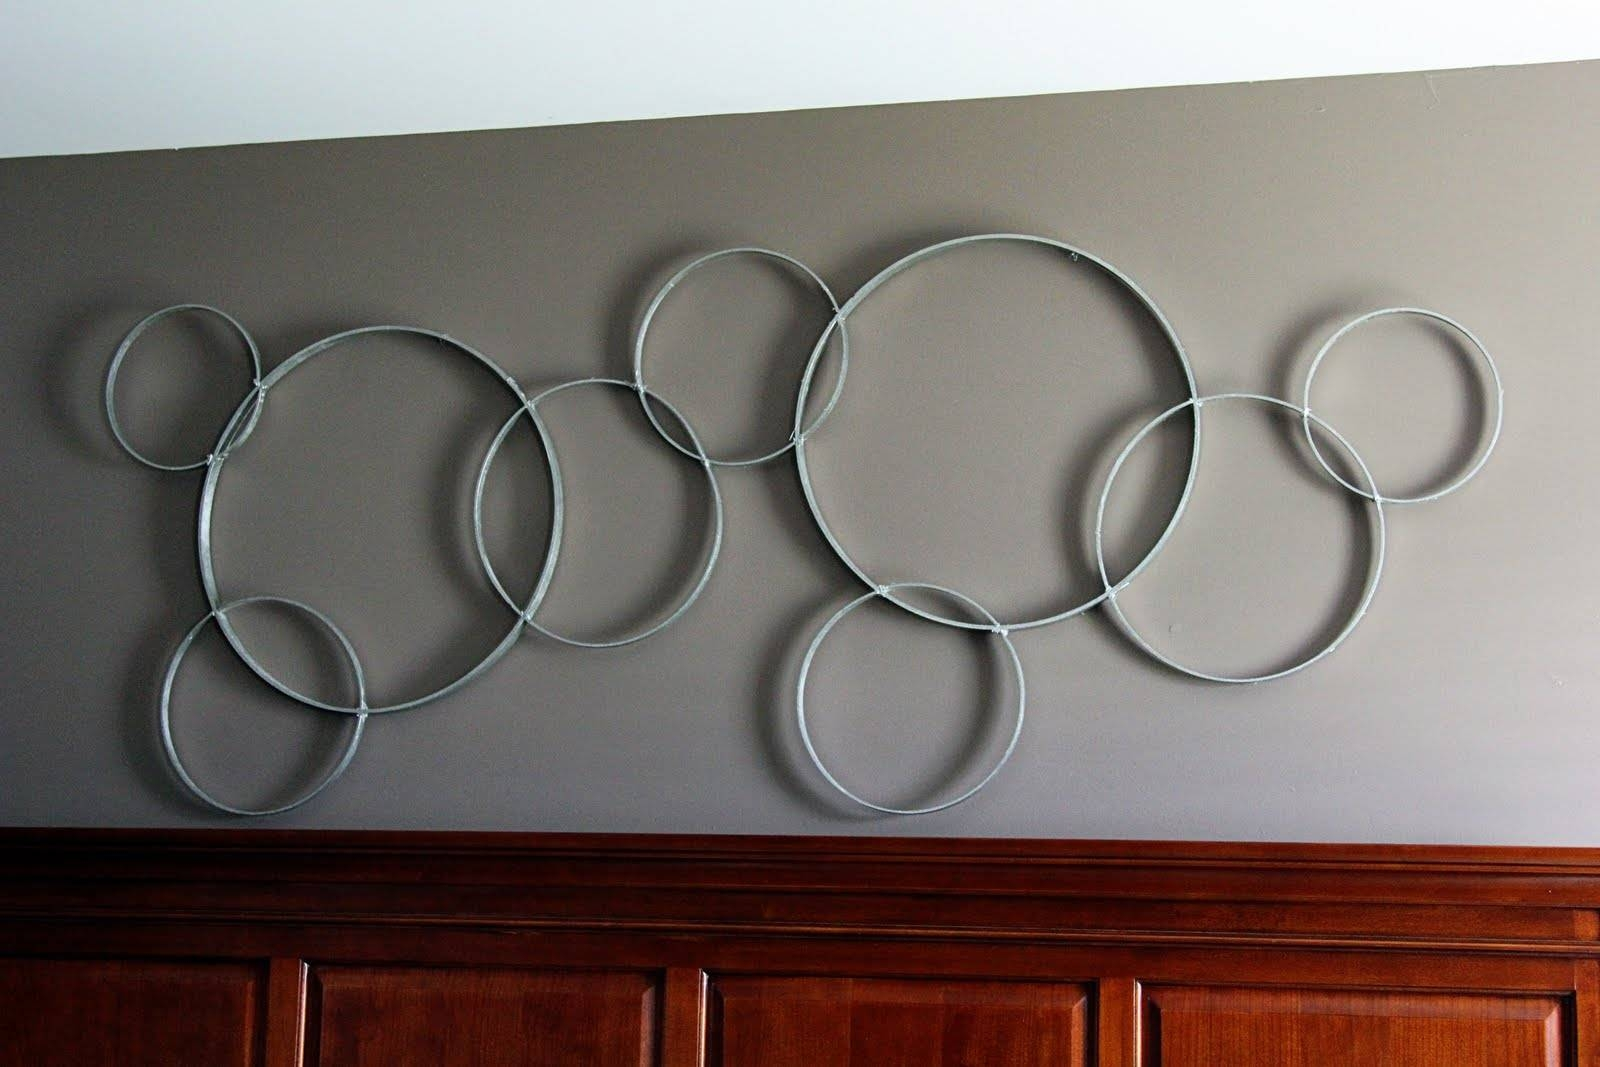 Amusing 30+ Circle Wall Art Design Ideas Of Intricate Circle Metal With Most Recent 3D Circle Wall Art (View 7 of 20)